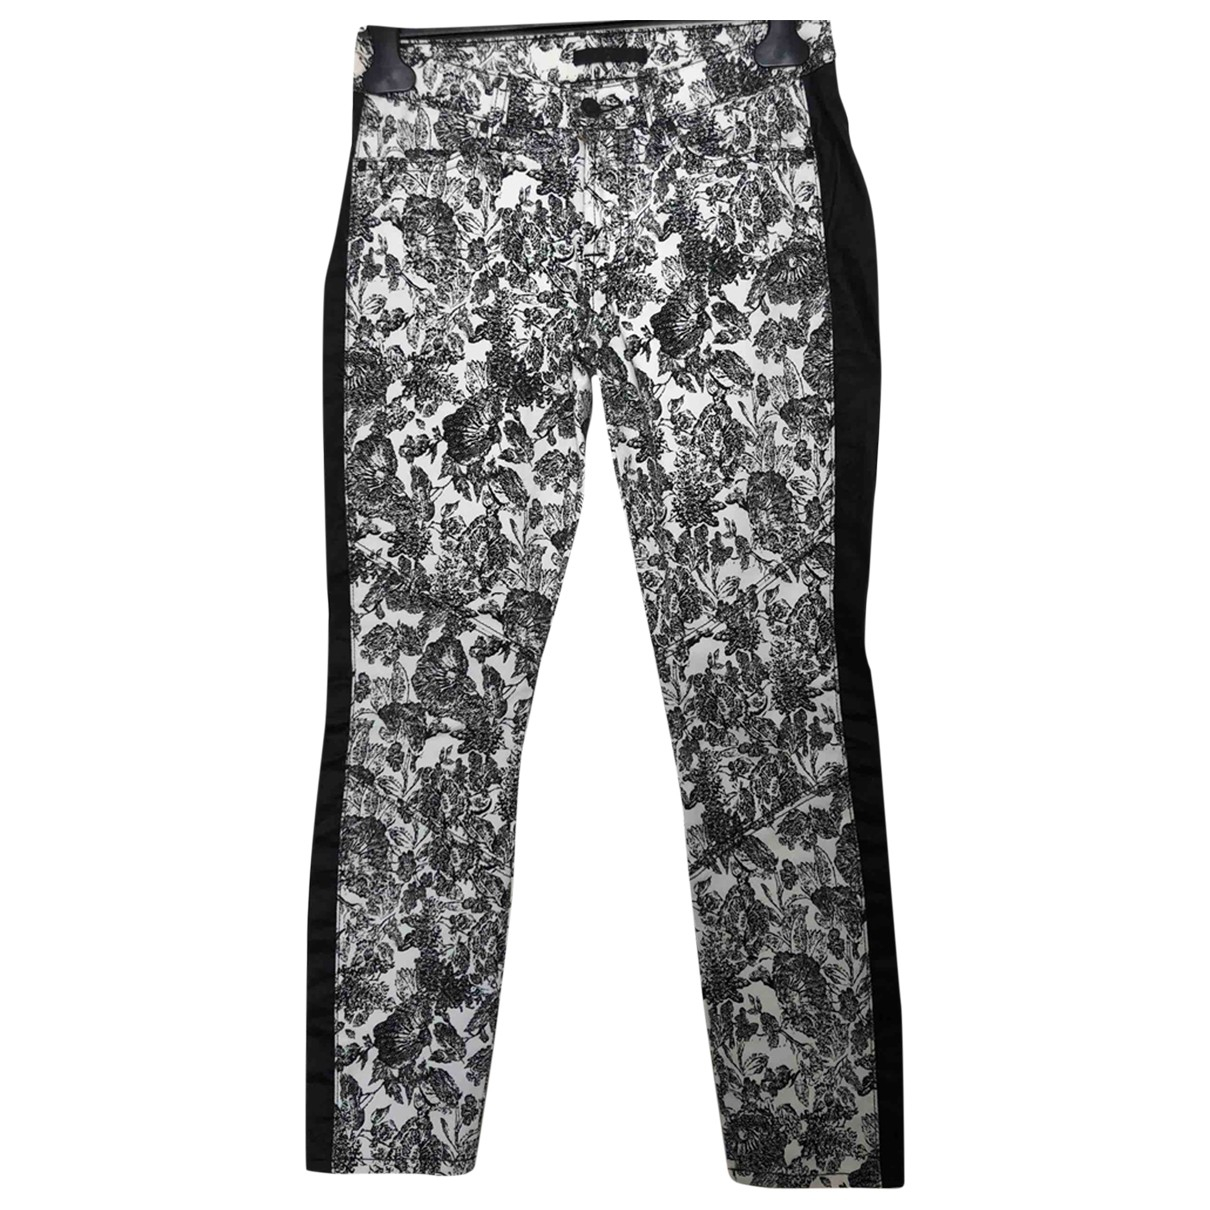 7 For All Mankind \N Multicolour Cotton Trousers for Women 36 FR